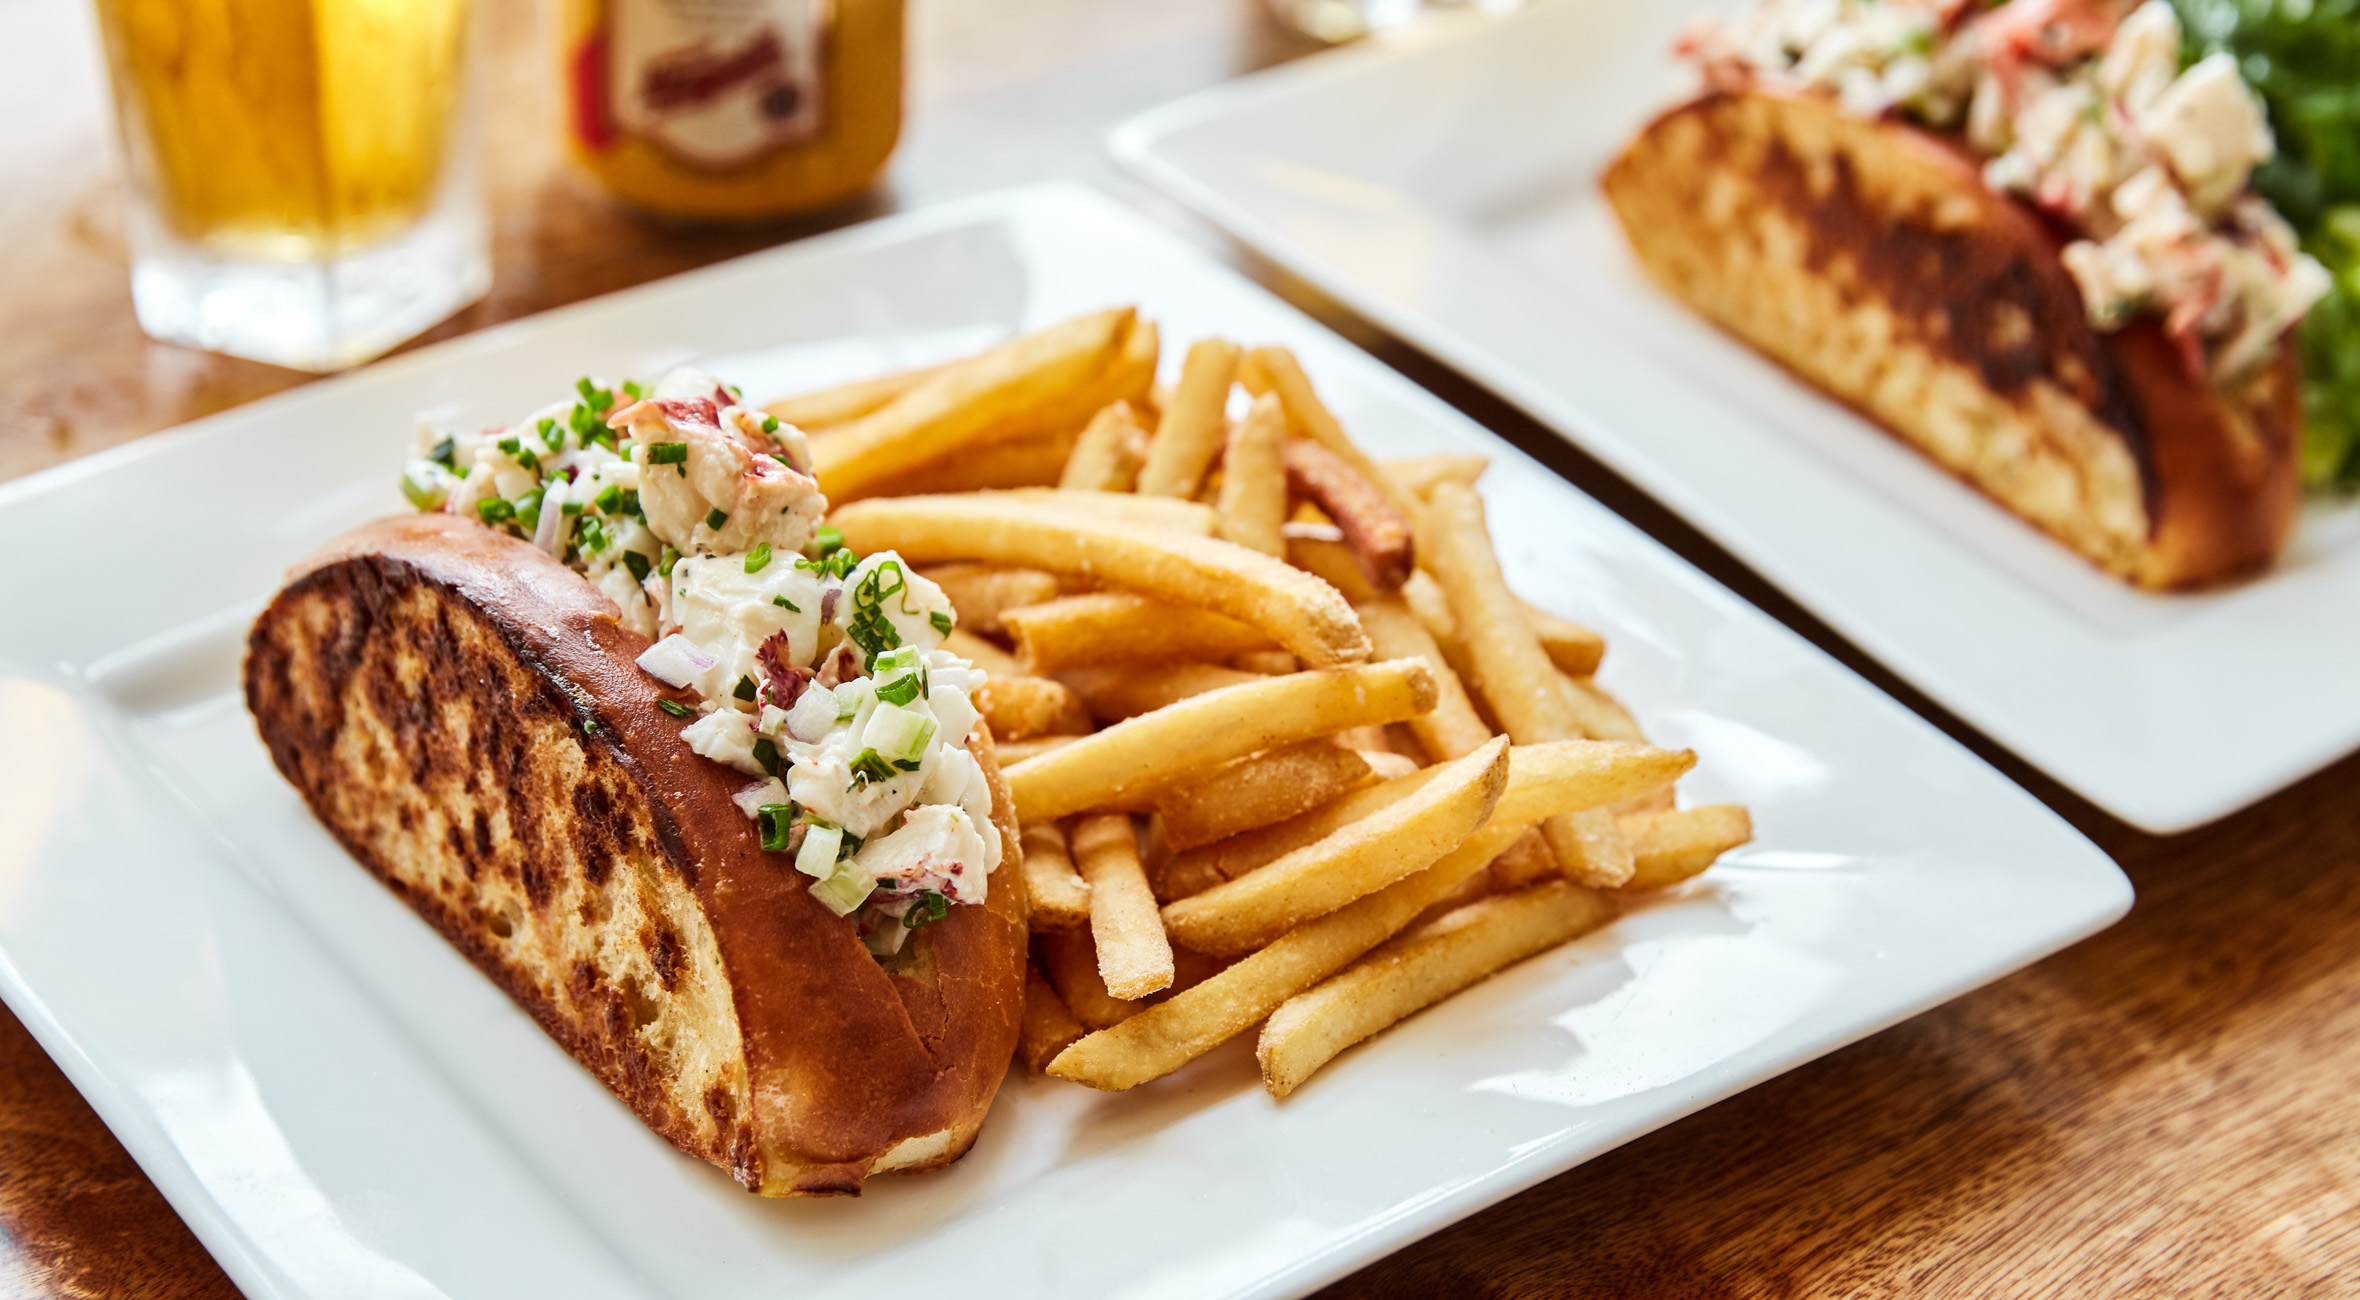 Lobster Roll and Drink at Thompson Brooke – New Williamsburg Joint Serves Maine Lobster in Homemade Brioche Rolls